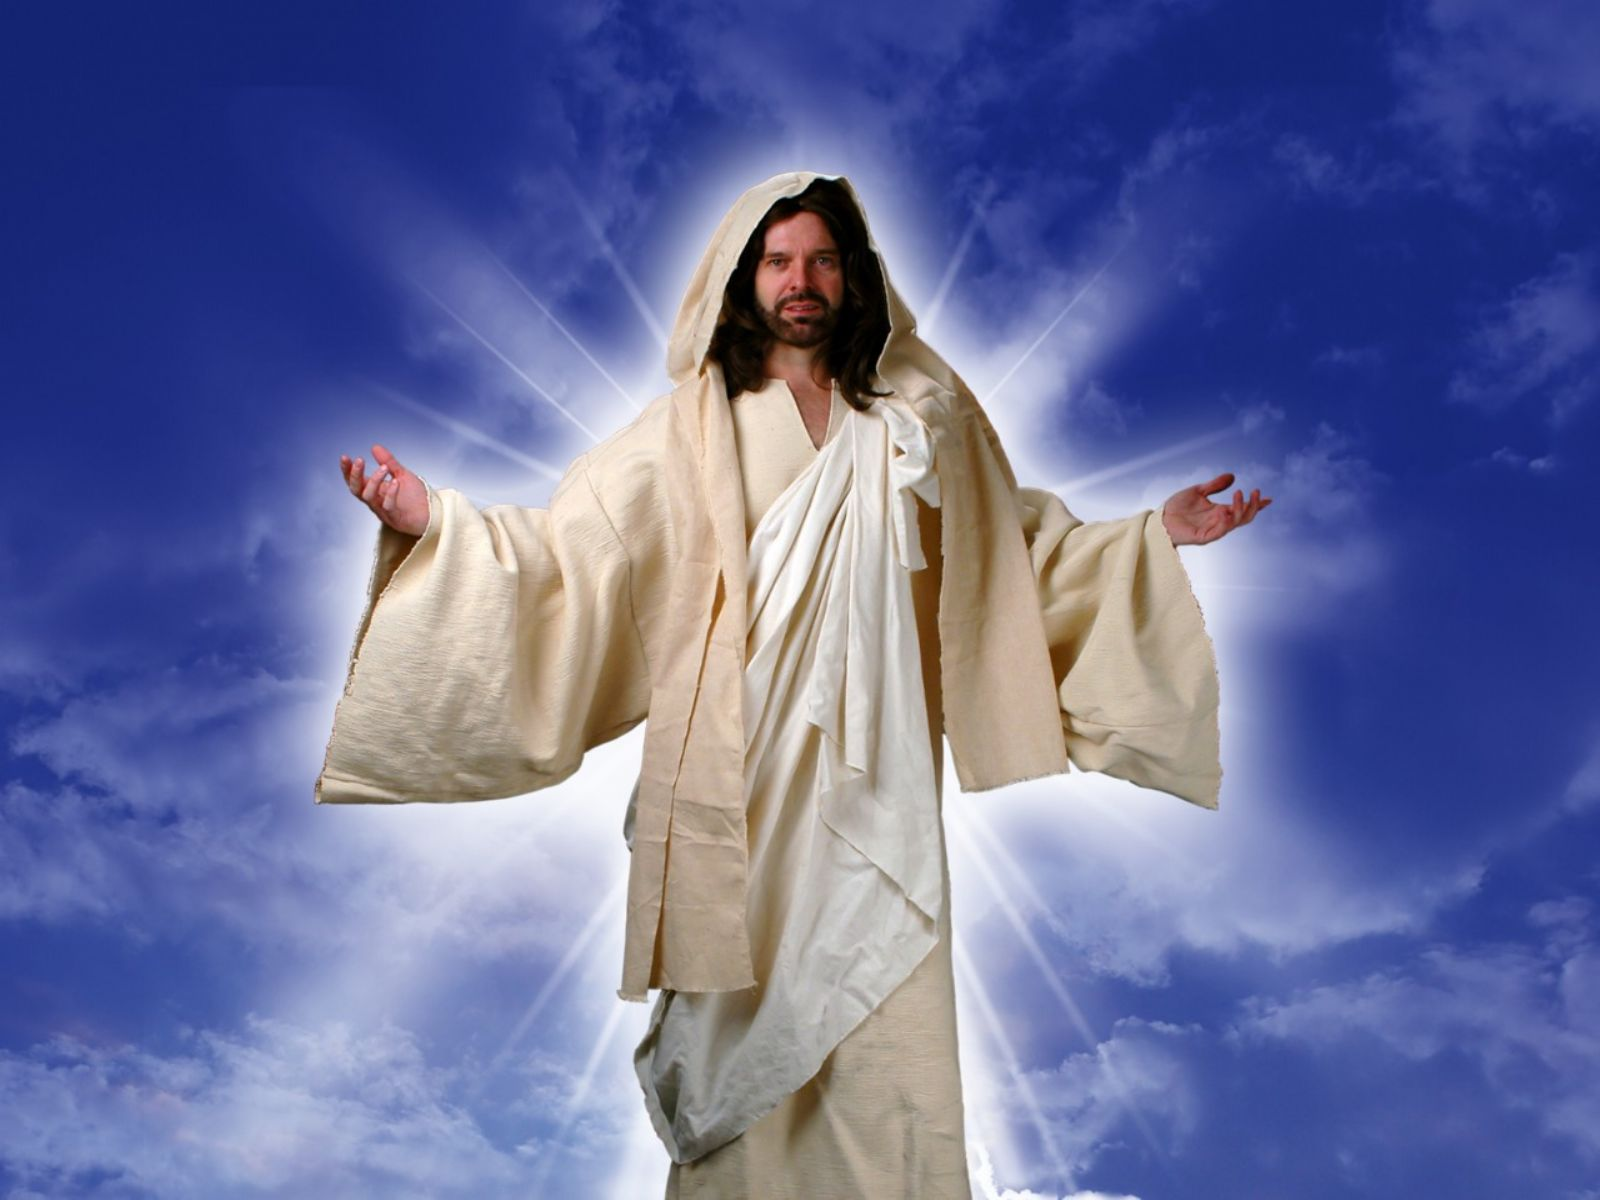 Jesus Christ HD wallpaper for download in laptop